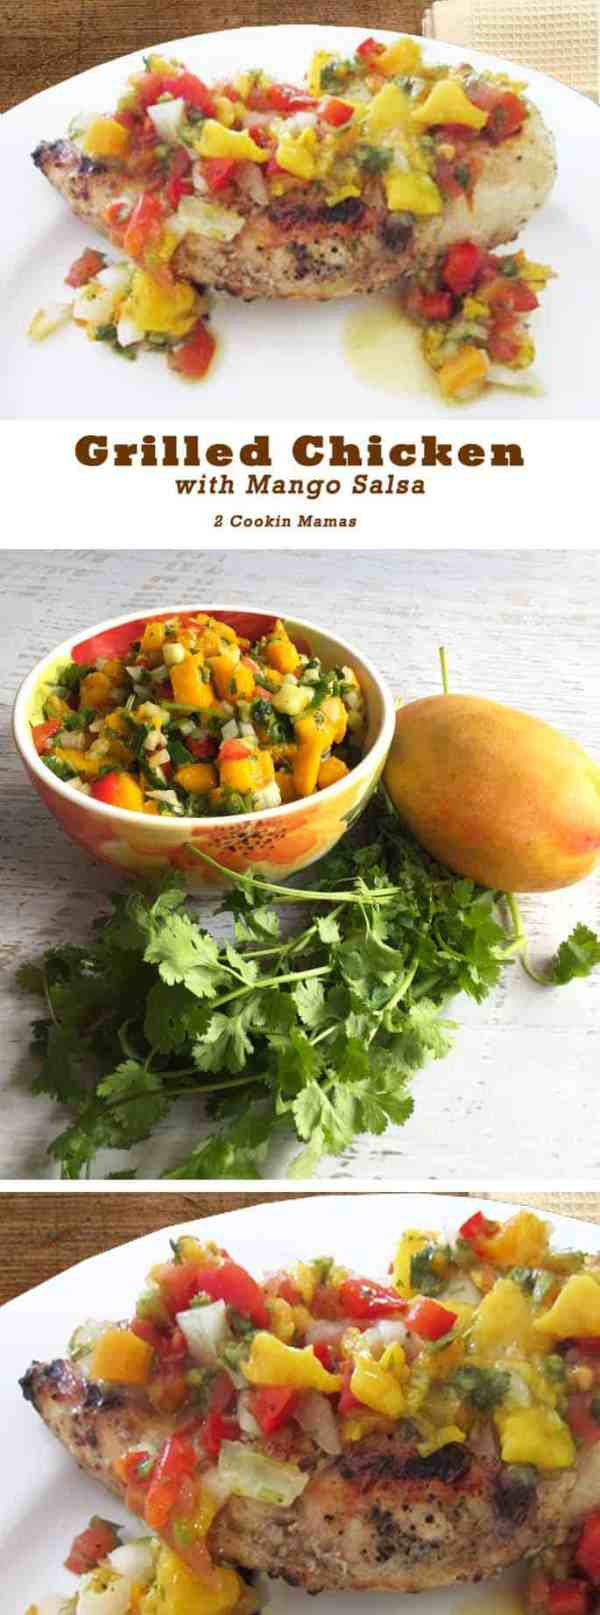 Chicken with Mango Salsa | 2 Cookin Mamas Easy citrus flavored grilled chicken with a fresh, flavorful mango salsa with a touch of heat. #recipe